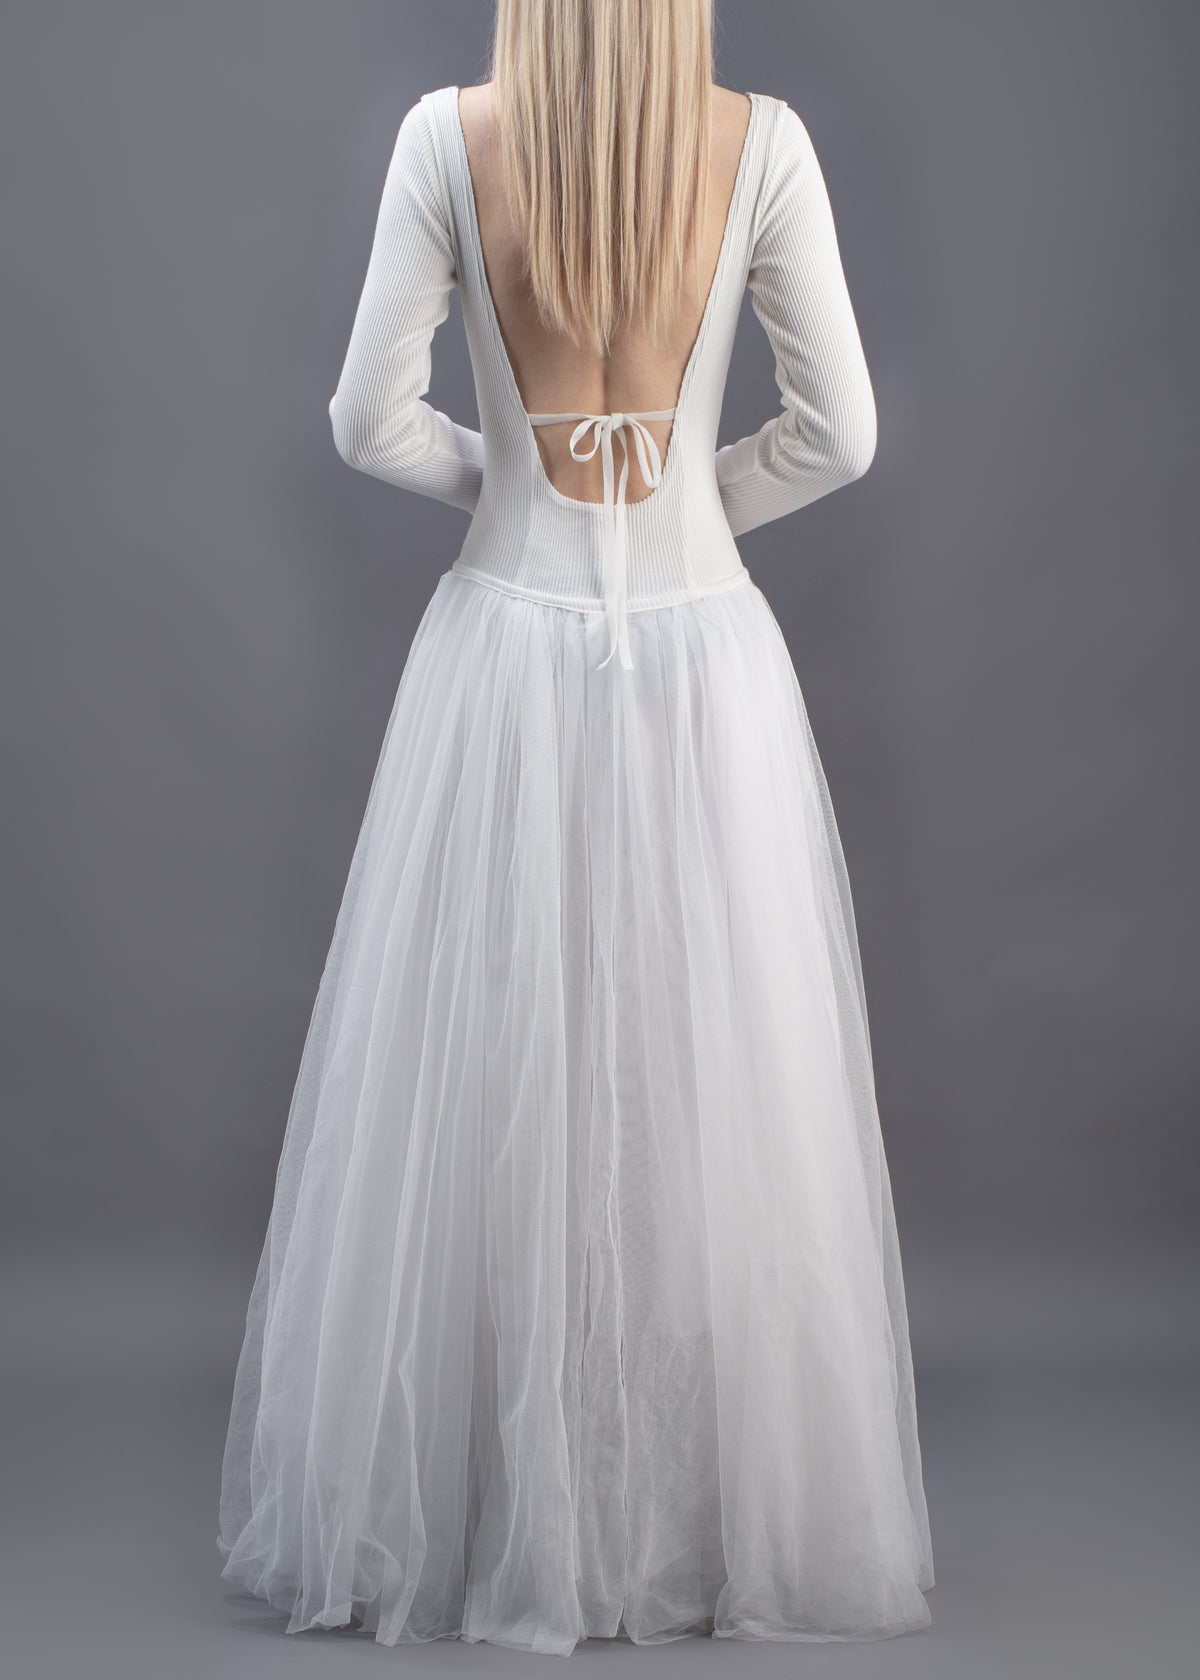 Image of Sophie Tulle Long Dress - White